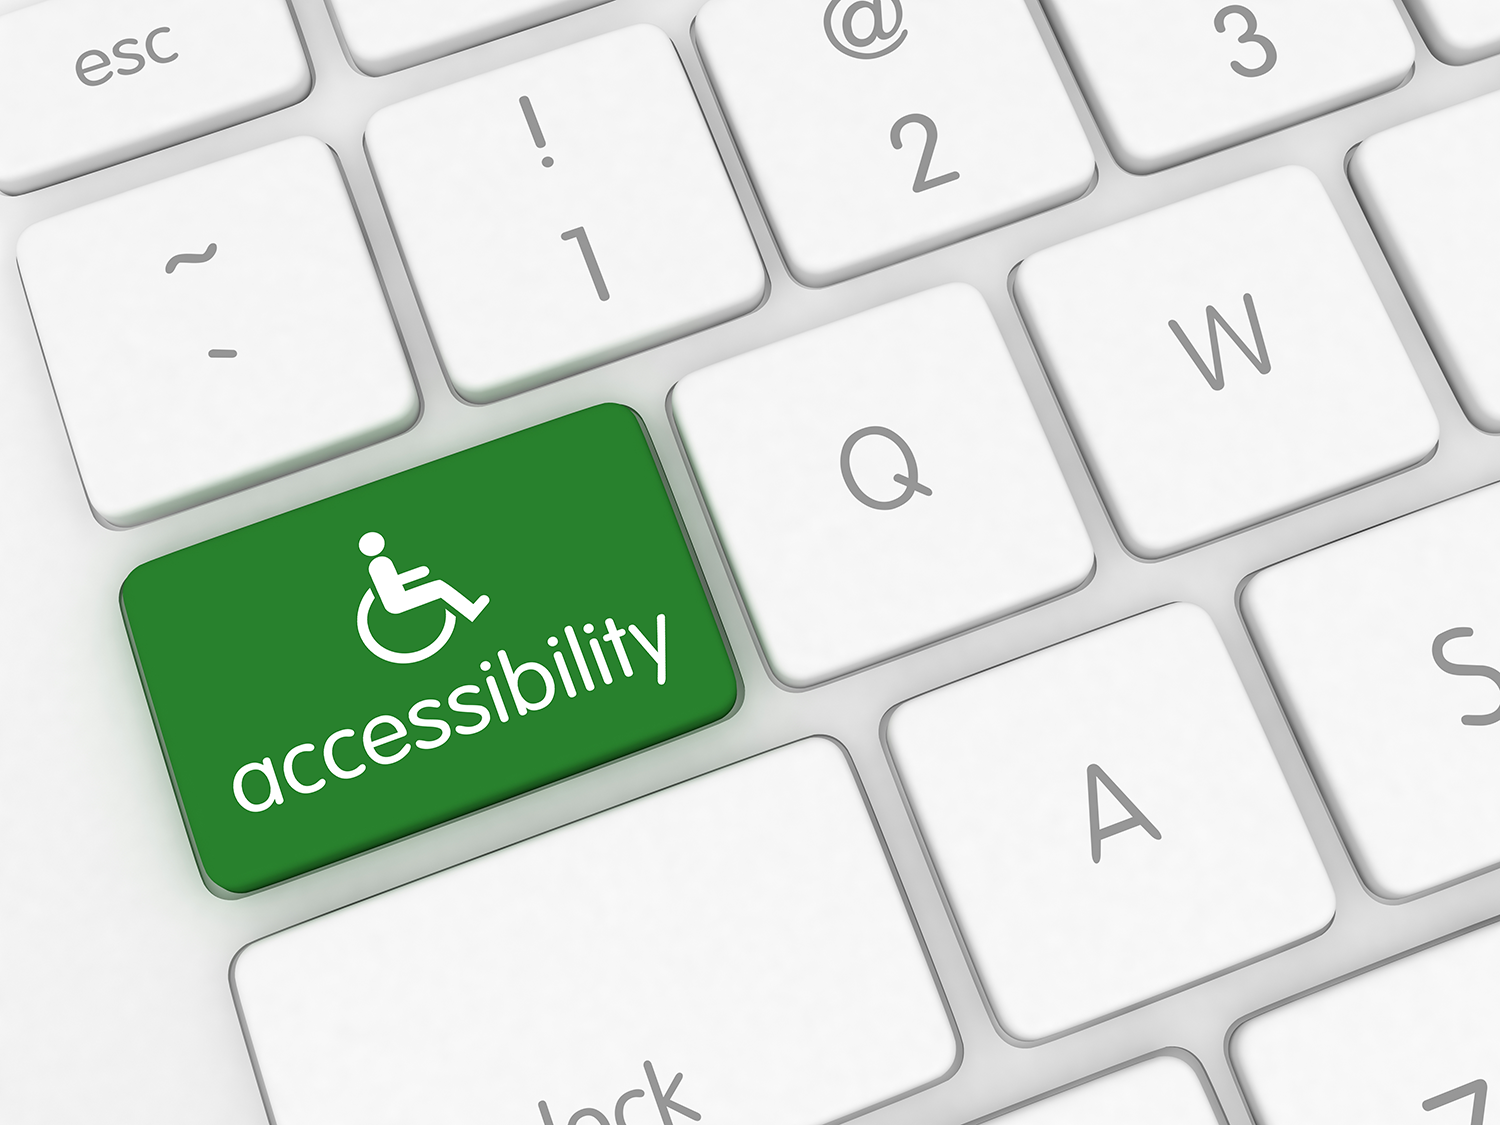 Accessibility-disability-computer-icon